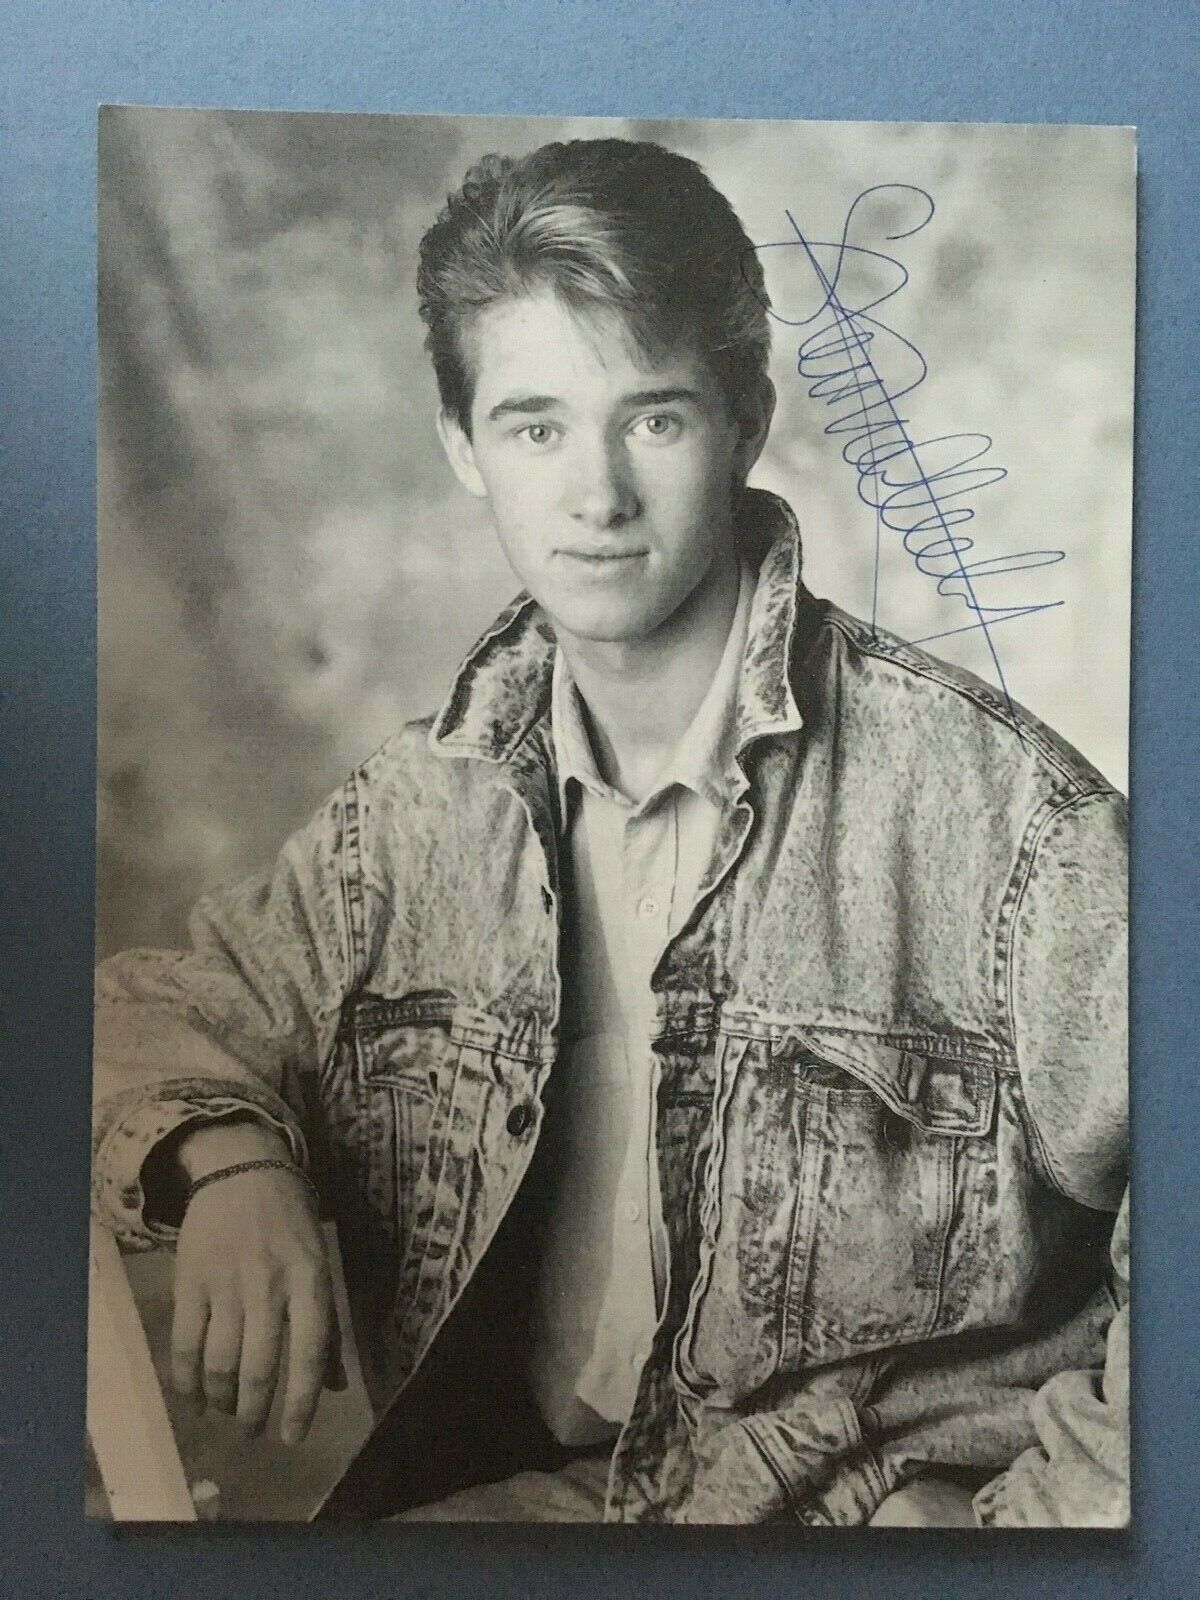 STEPHEN HENDRY - LEGENDARY SNOOKER PLAYER - EXCELLENT SIGNED PHOTO